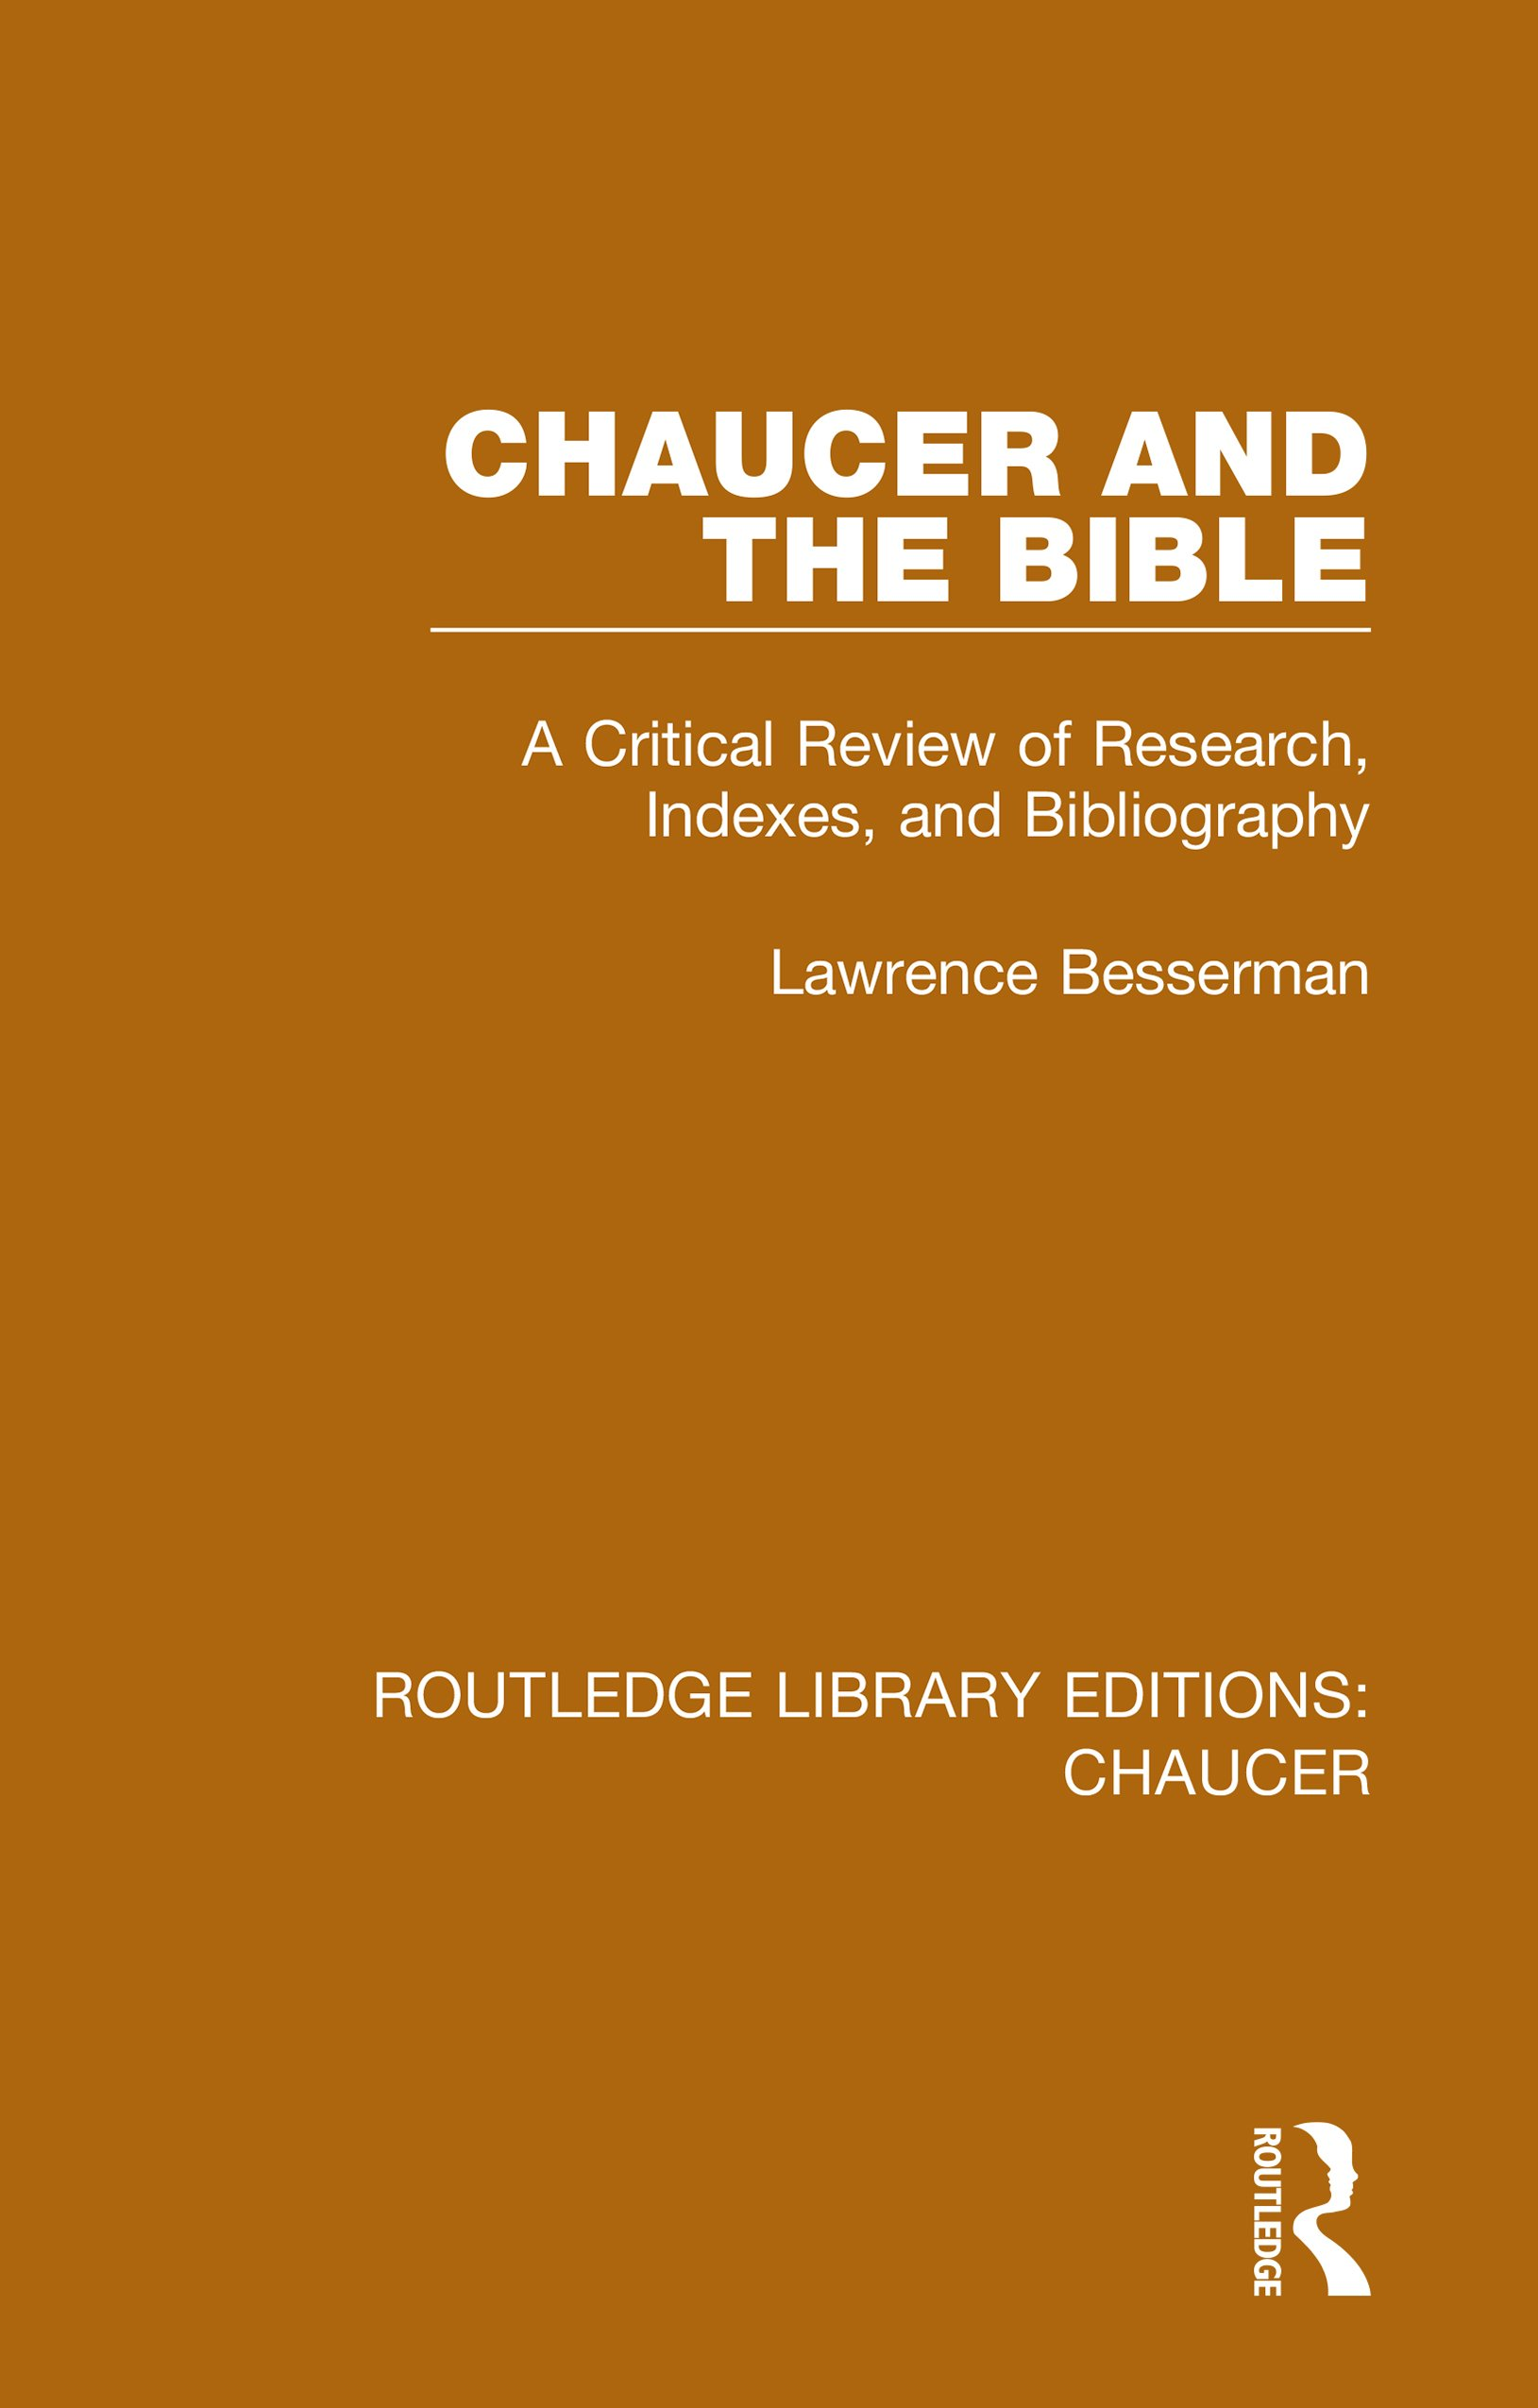 Chaucer and the Bible: A Critical Review of Research, Indexes, and Bibliography book cover